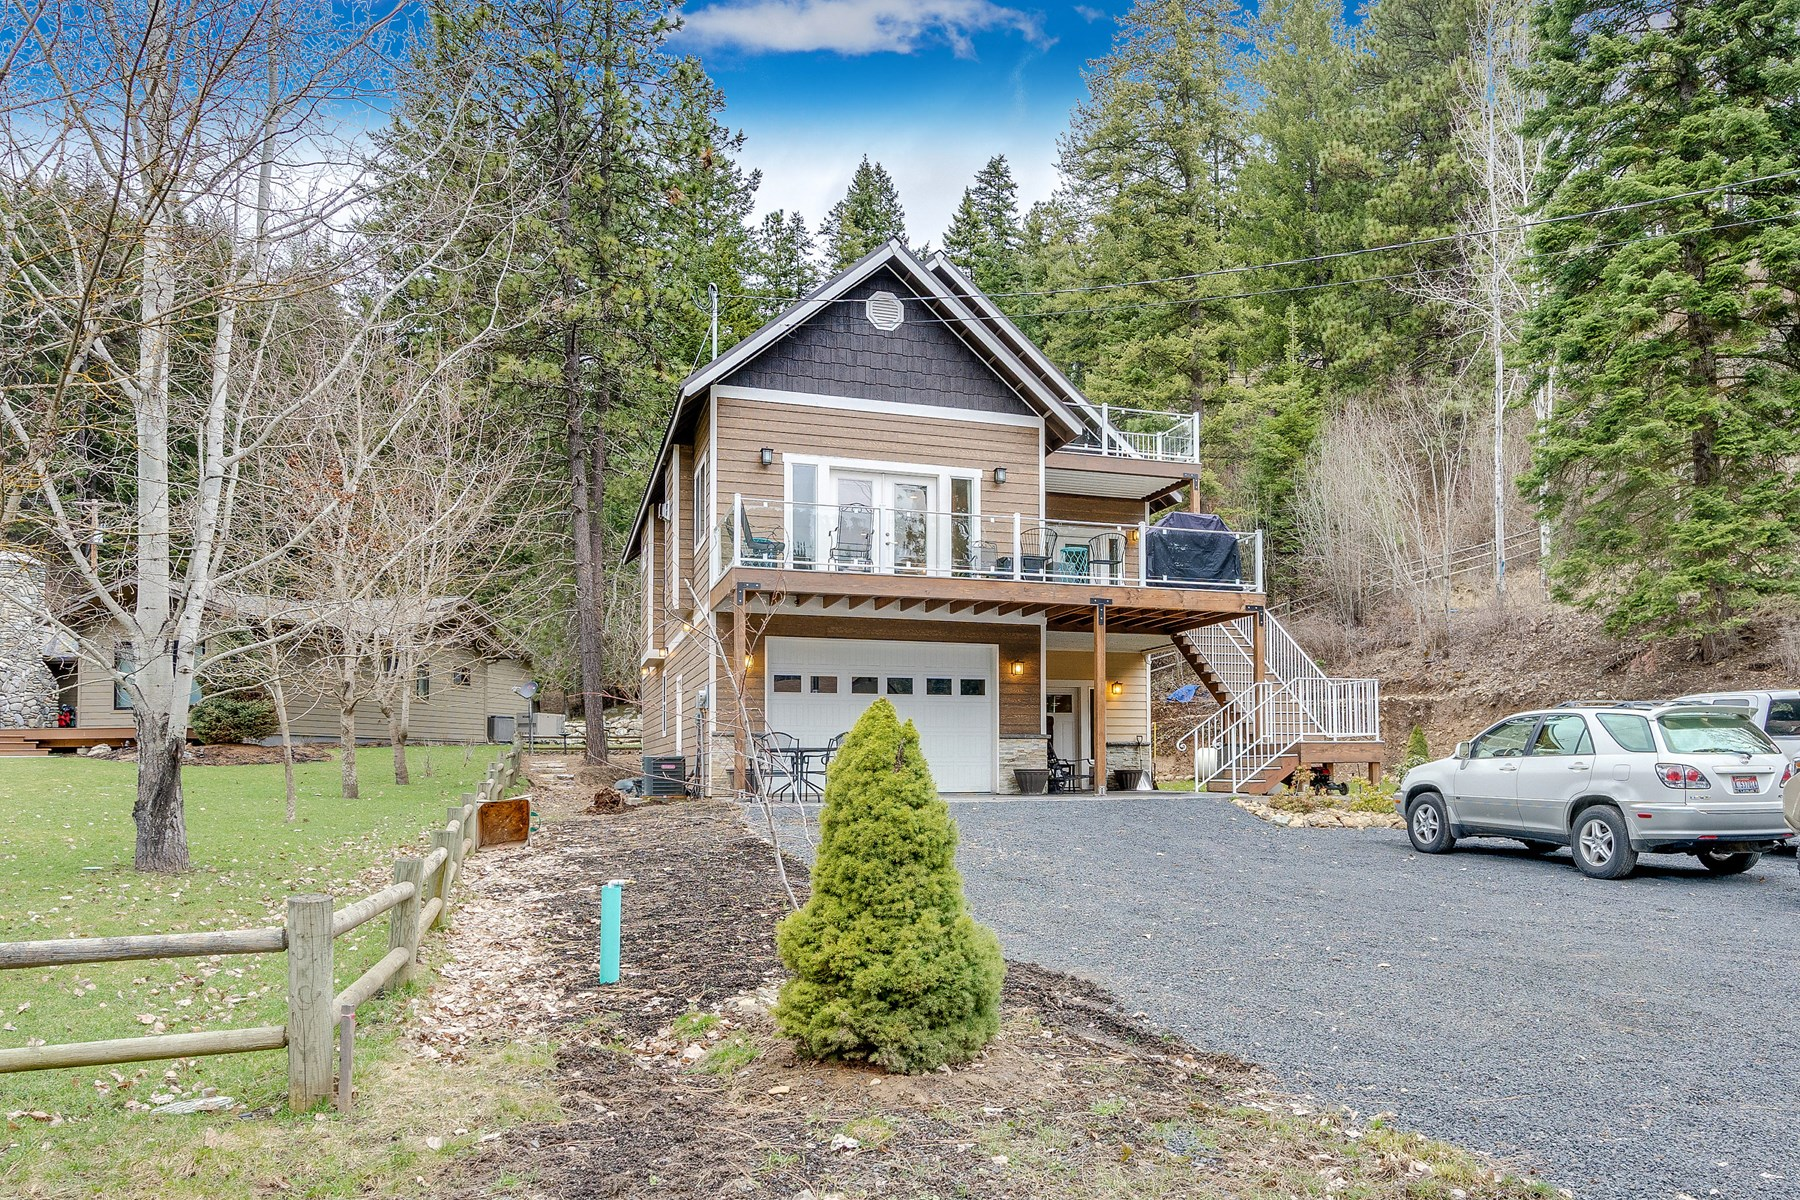 Withdrawn - North Idaho Secondary Waterfront Home on Lake